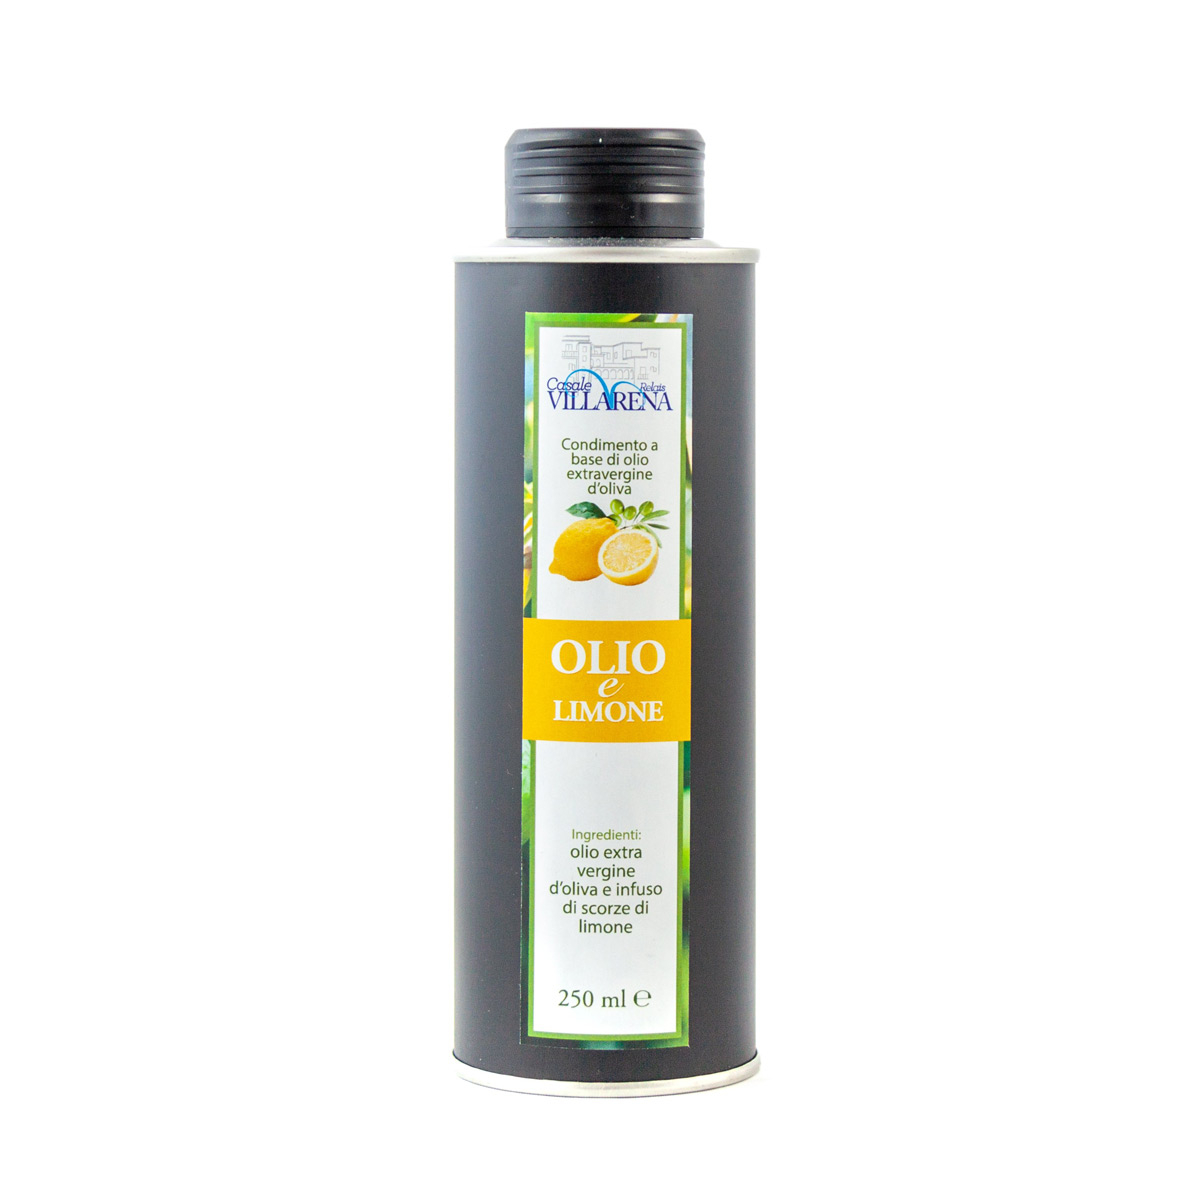 Extra virgin olive oil with lemon in can